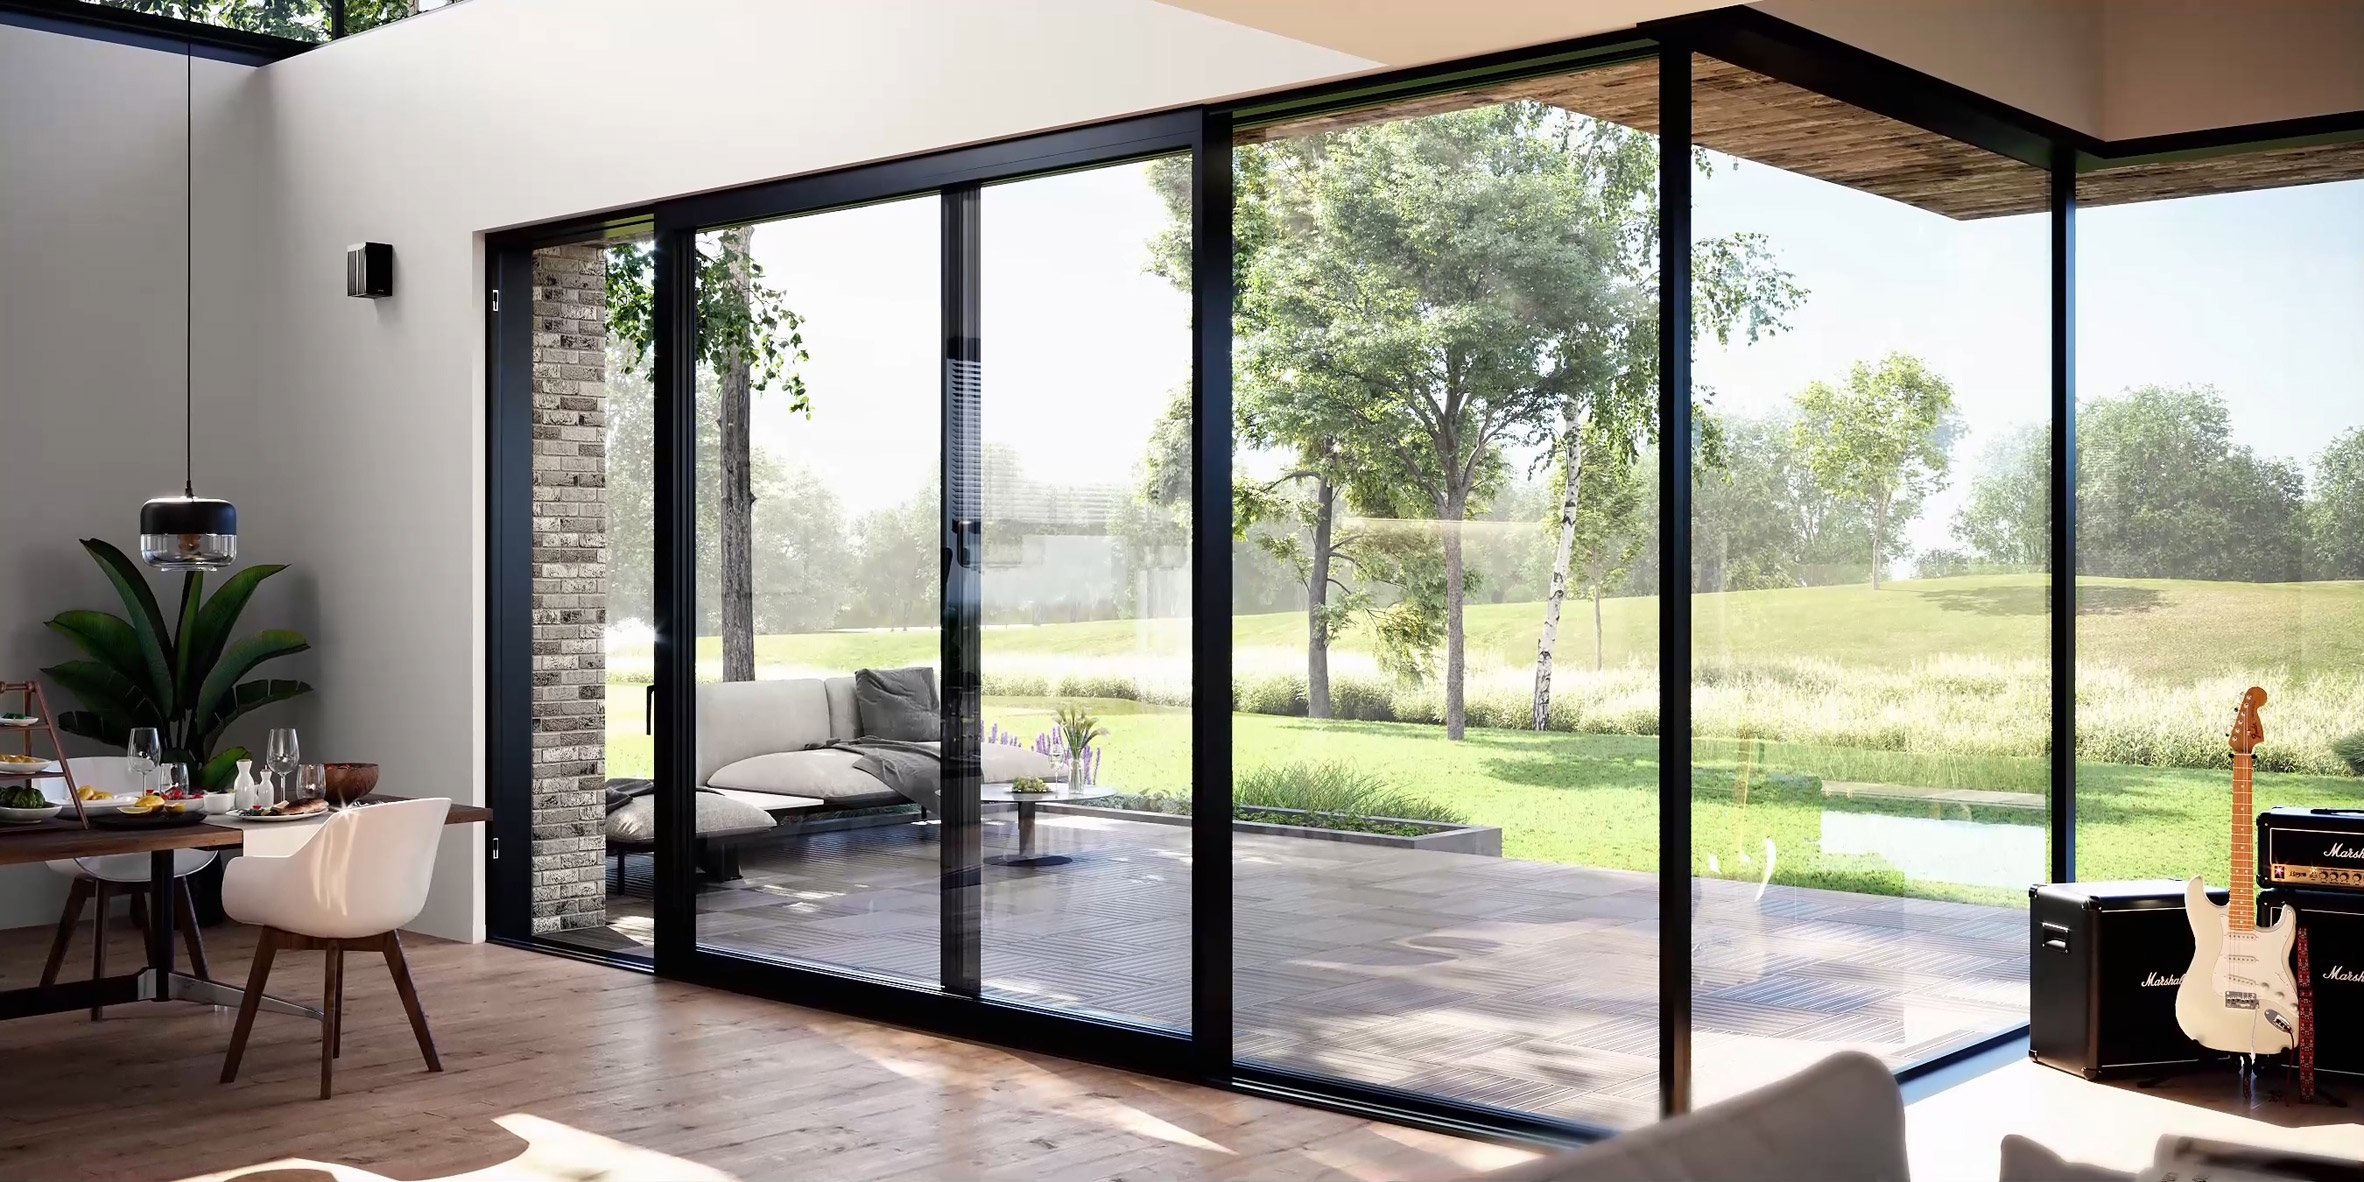 Masterpatio sliding window system by Reynaers